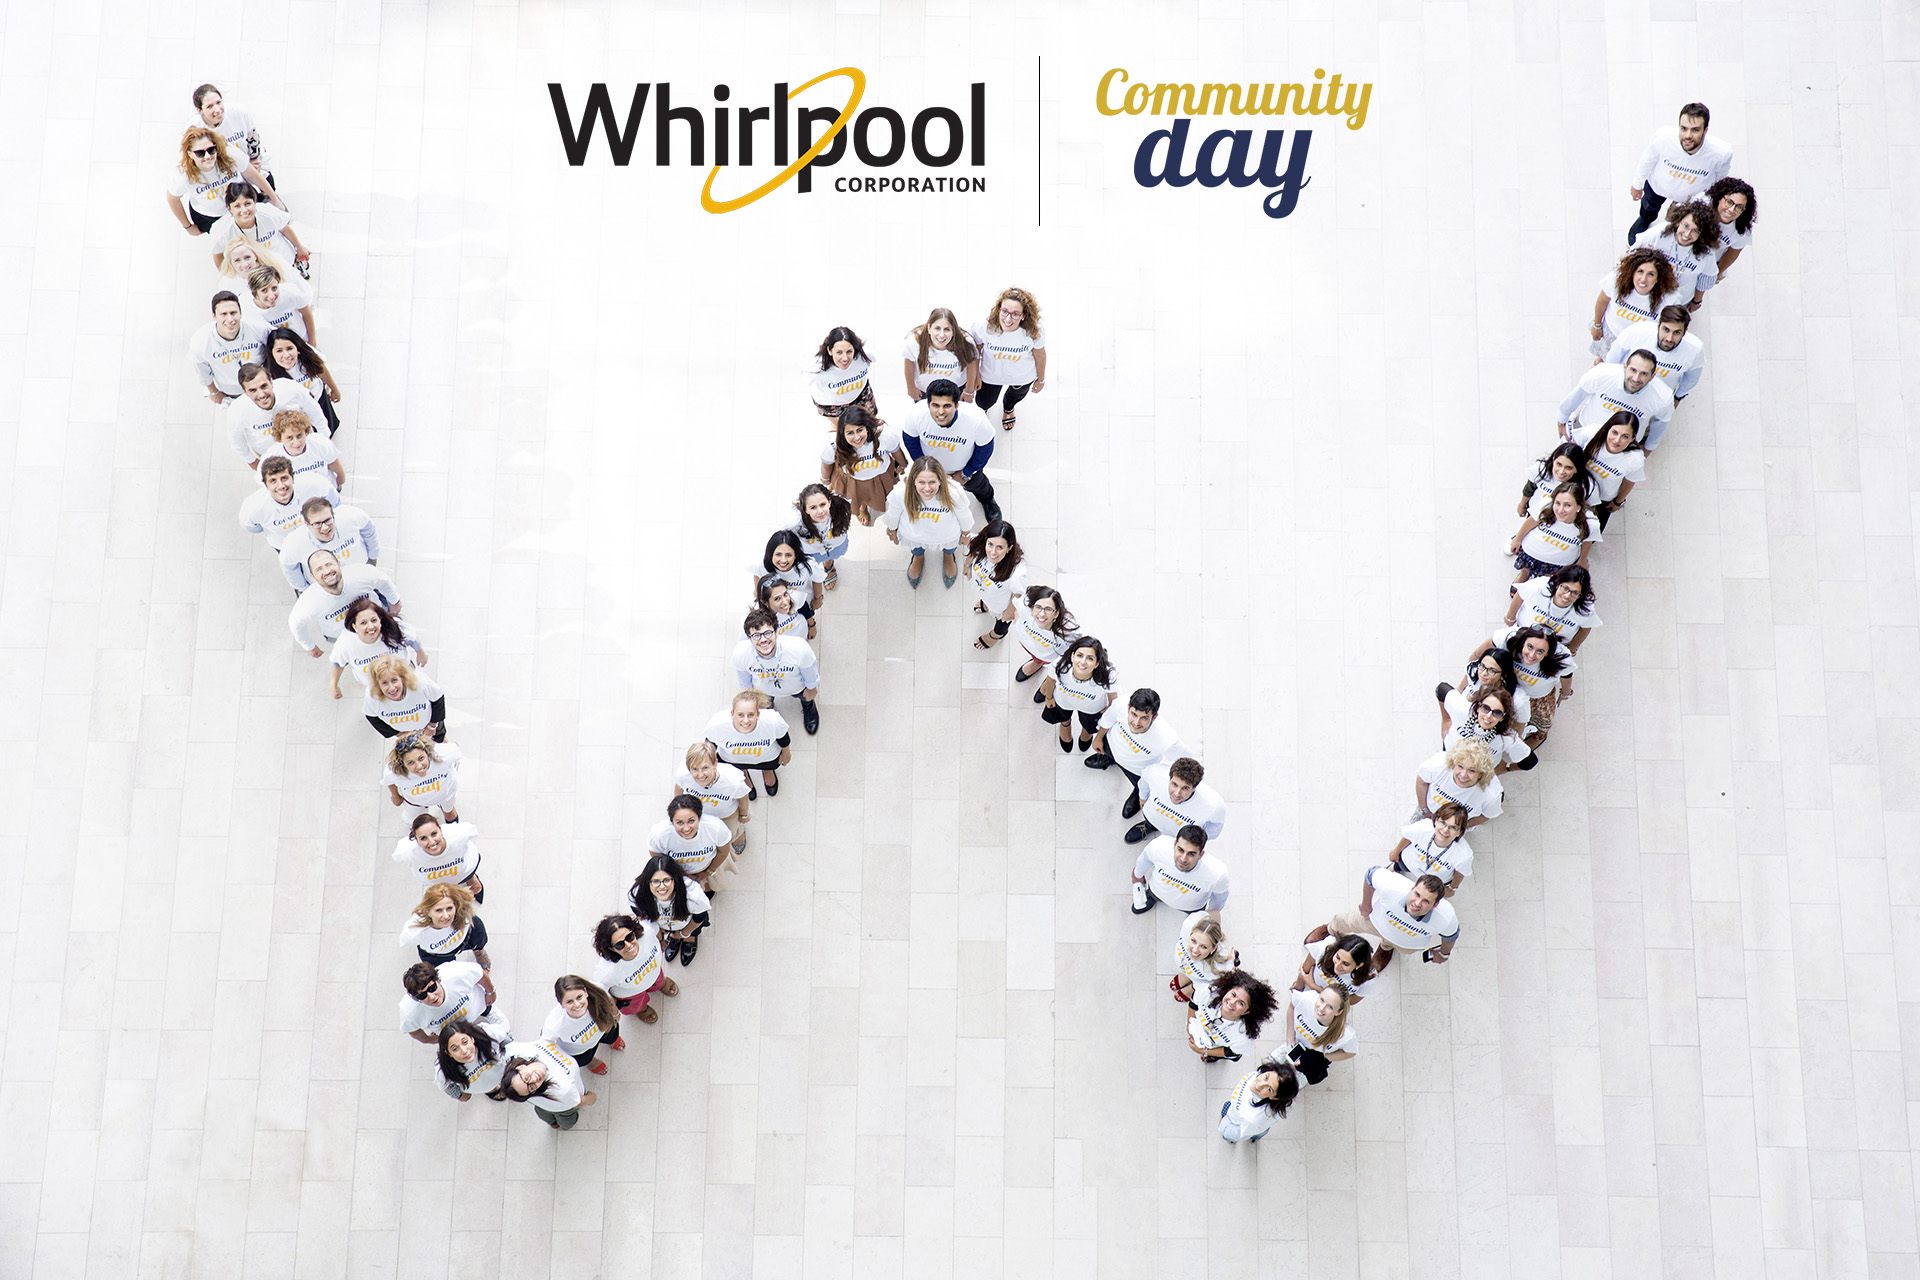 Whirlpool EMEA Community Day 2018